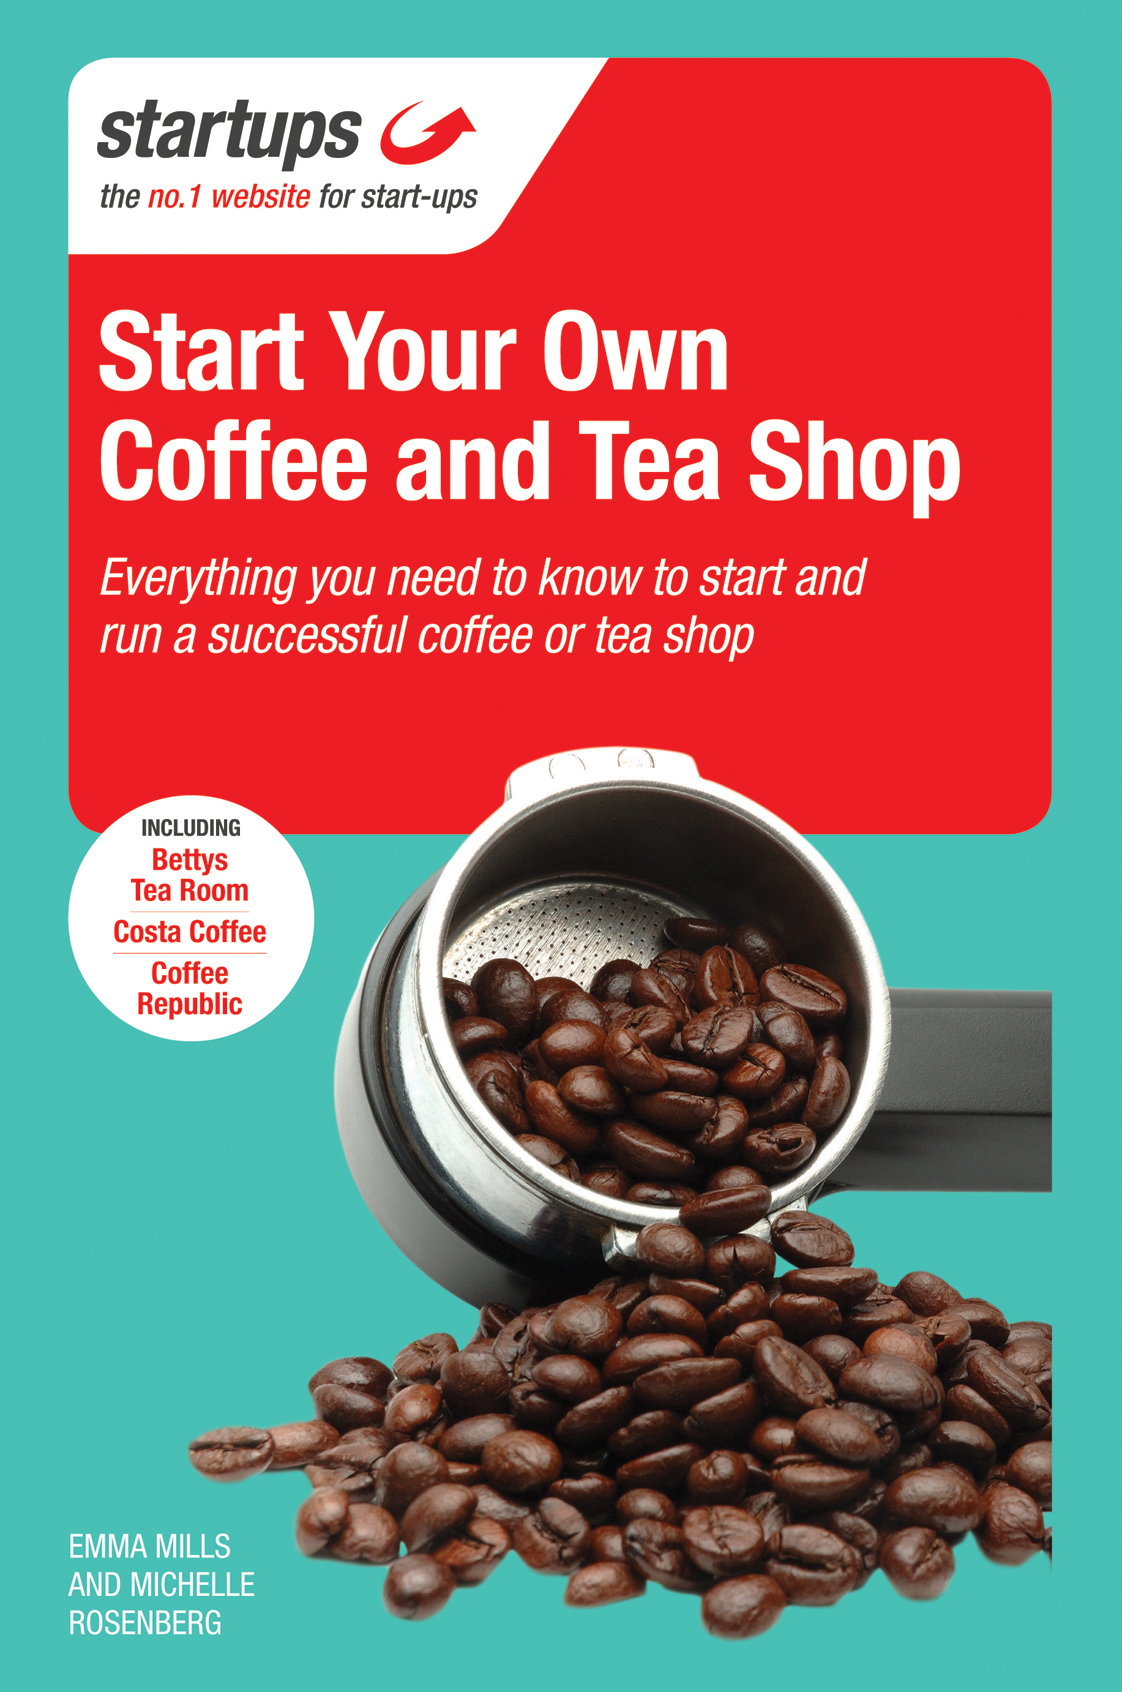 Start Your Own Coffee and Tea Shop